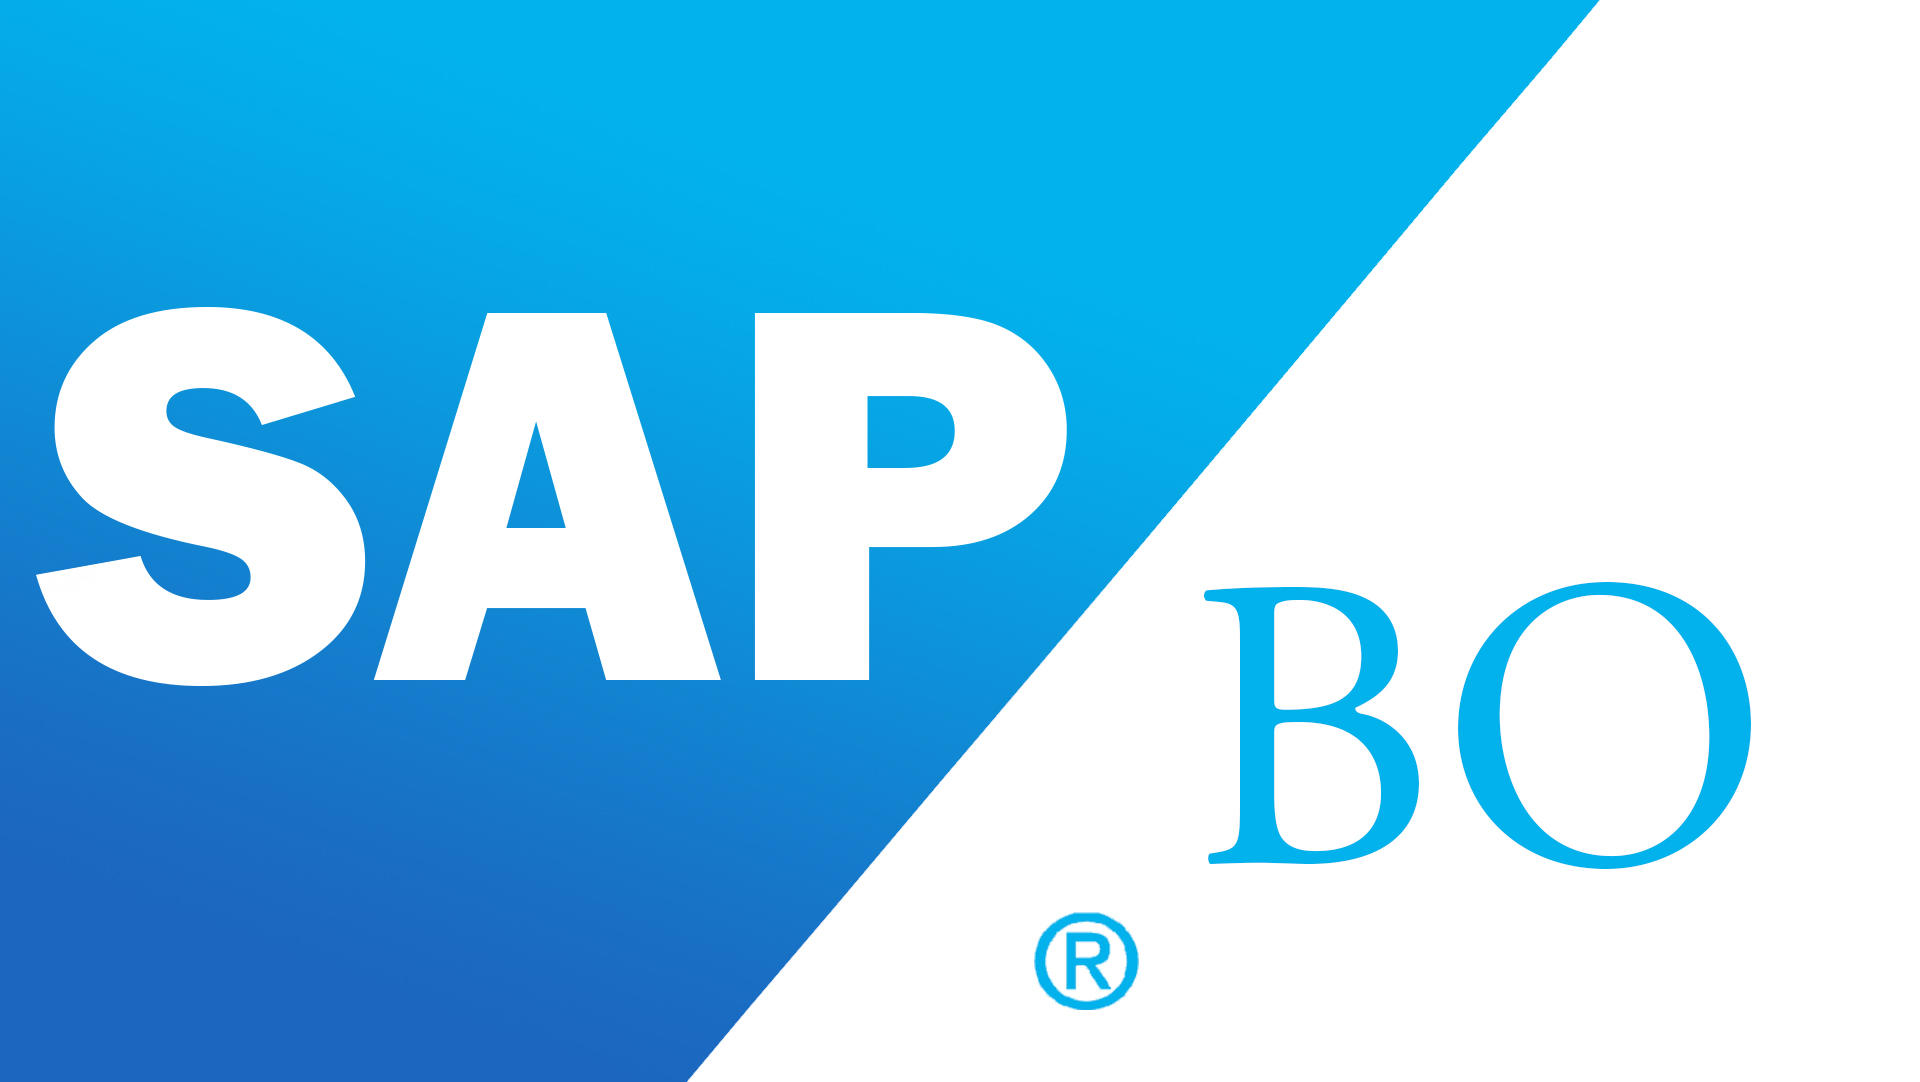 Sap Bo Training In Chennai likewise Fon 4k Hd Goluboy Android Akvarel 4019 likewise Google Engineer Creates The Perfect Smart Bathroom Mirror as well Acute Glomerulonephritis as well Group Mind Mapping. on android projects